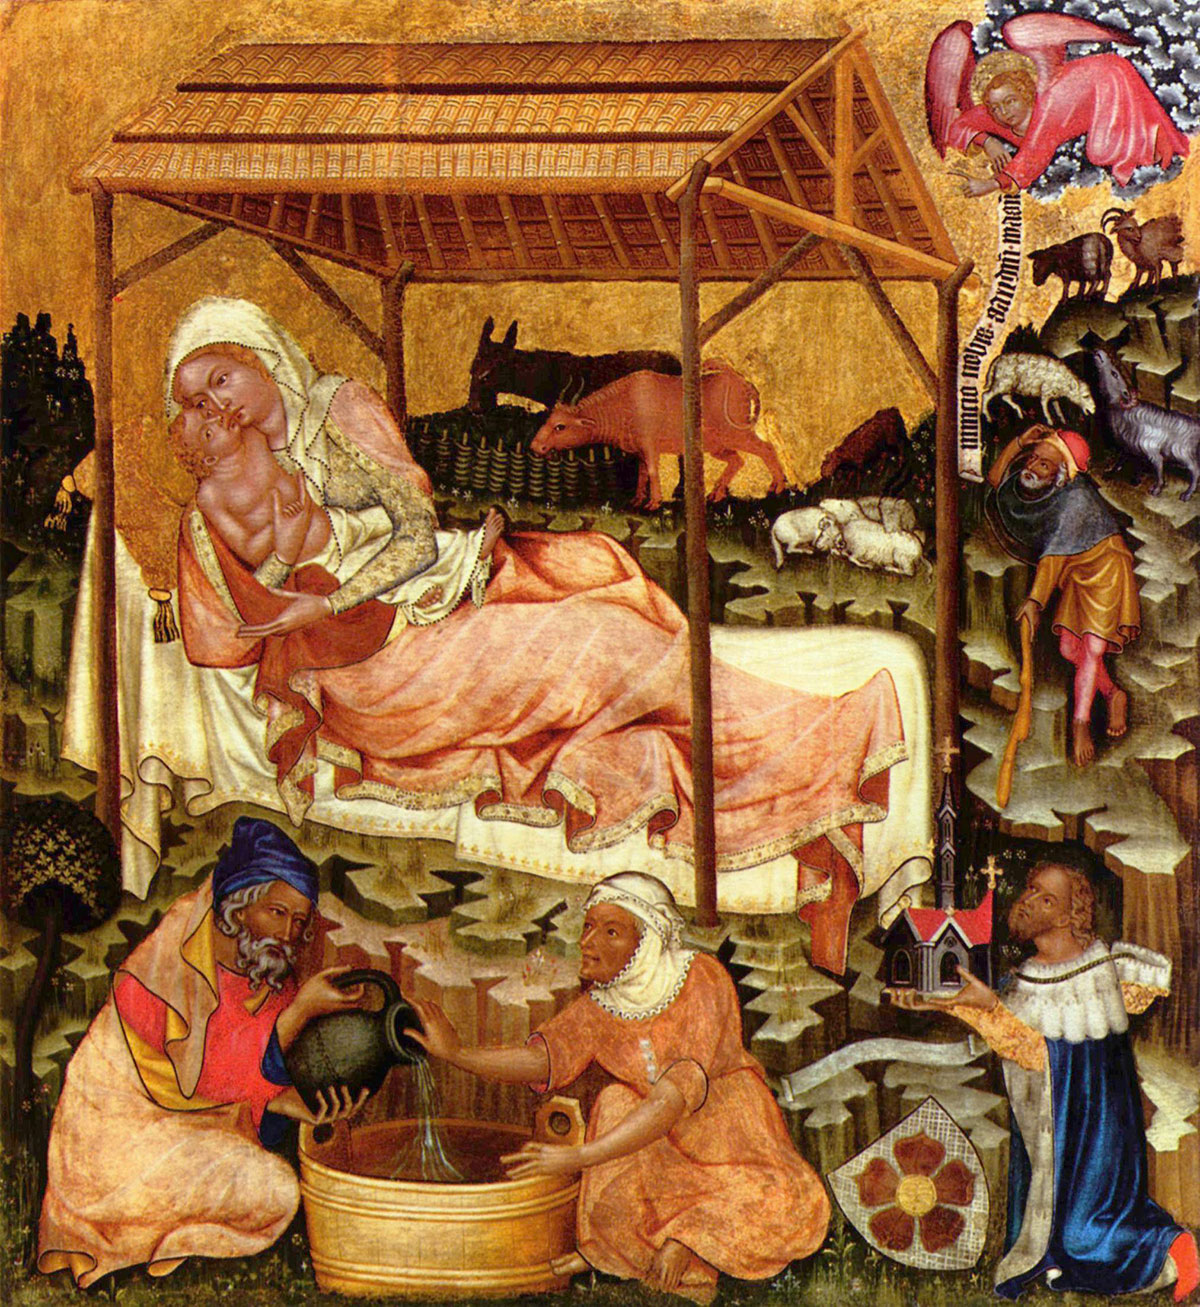 Miniature medieval painting of the Nativity by Master of Vyšší Brod